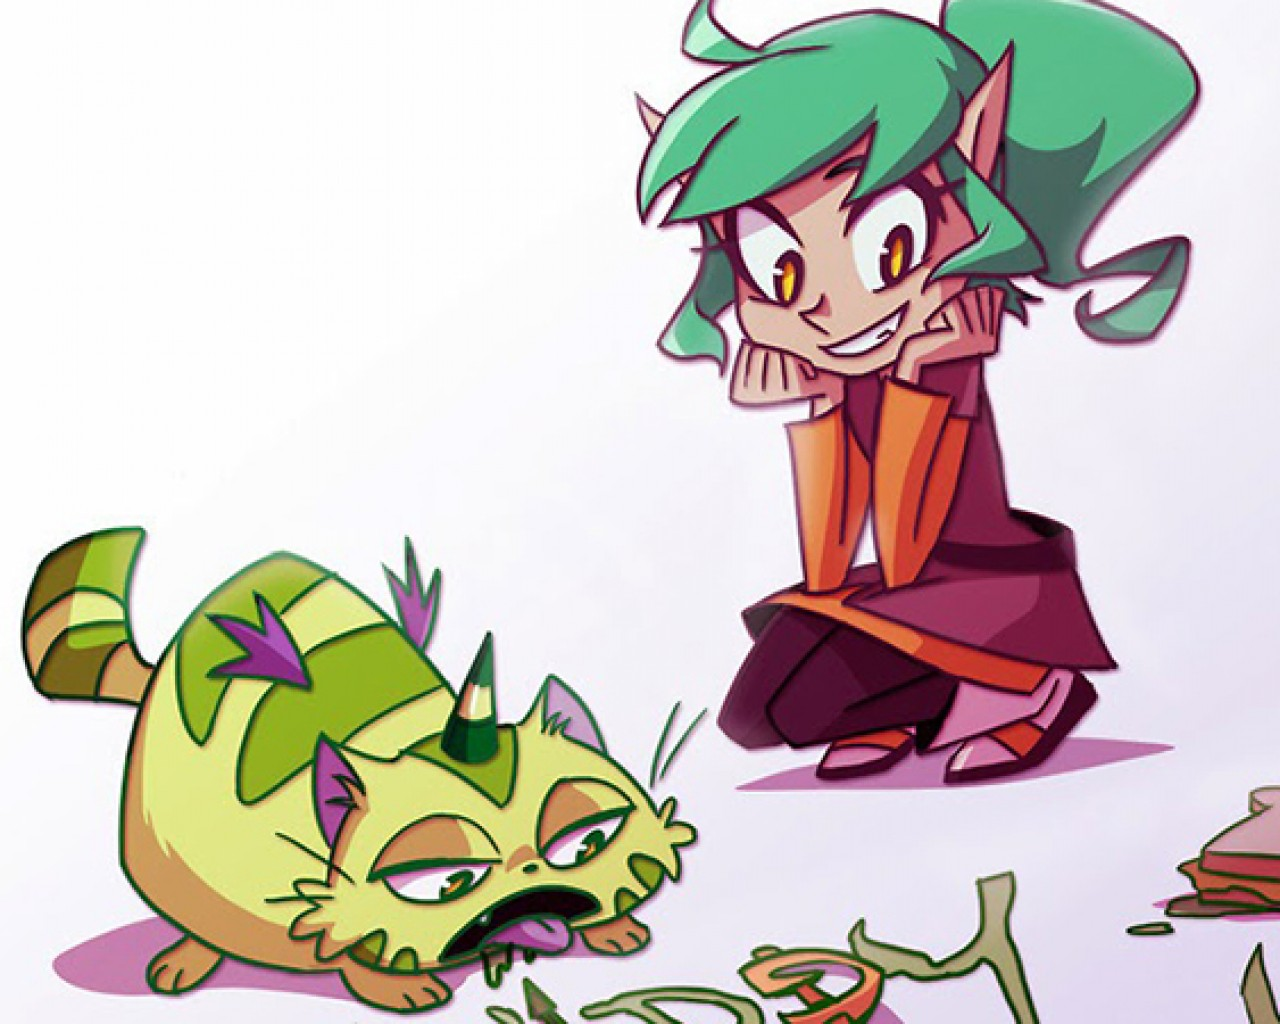 Poster Image for Harpy Gee